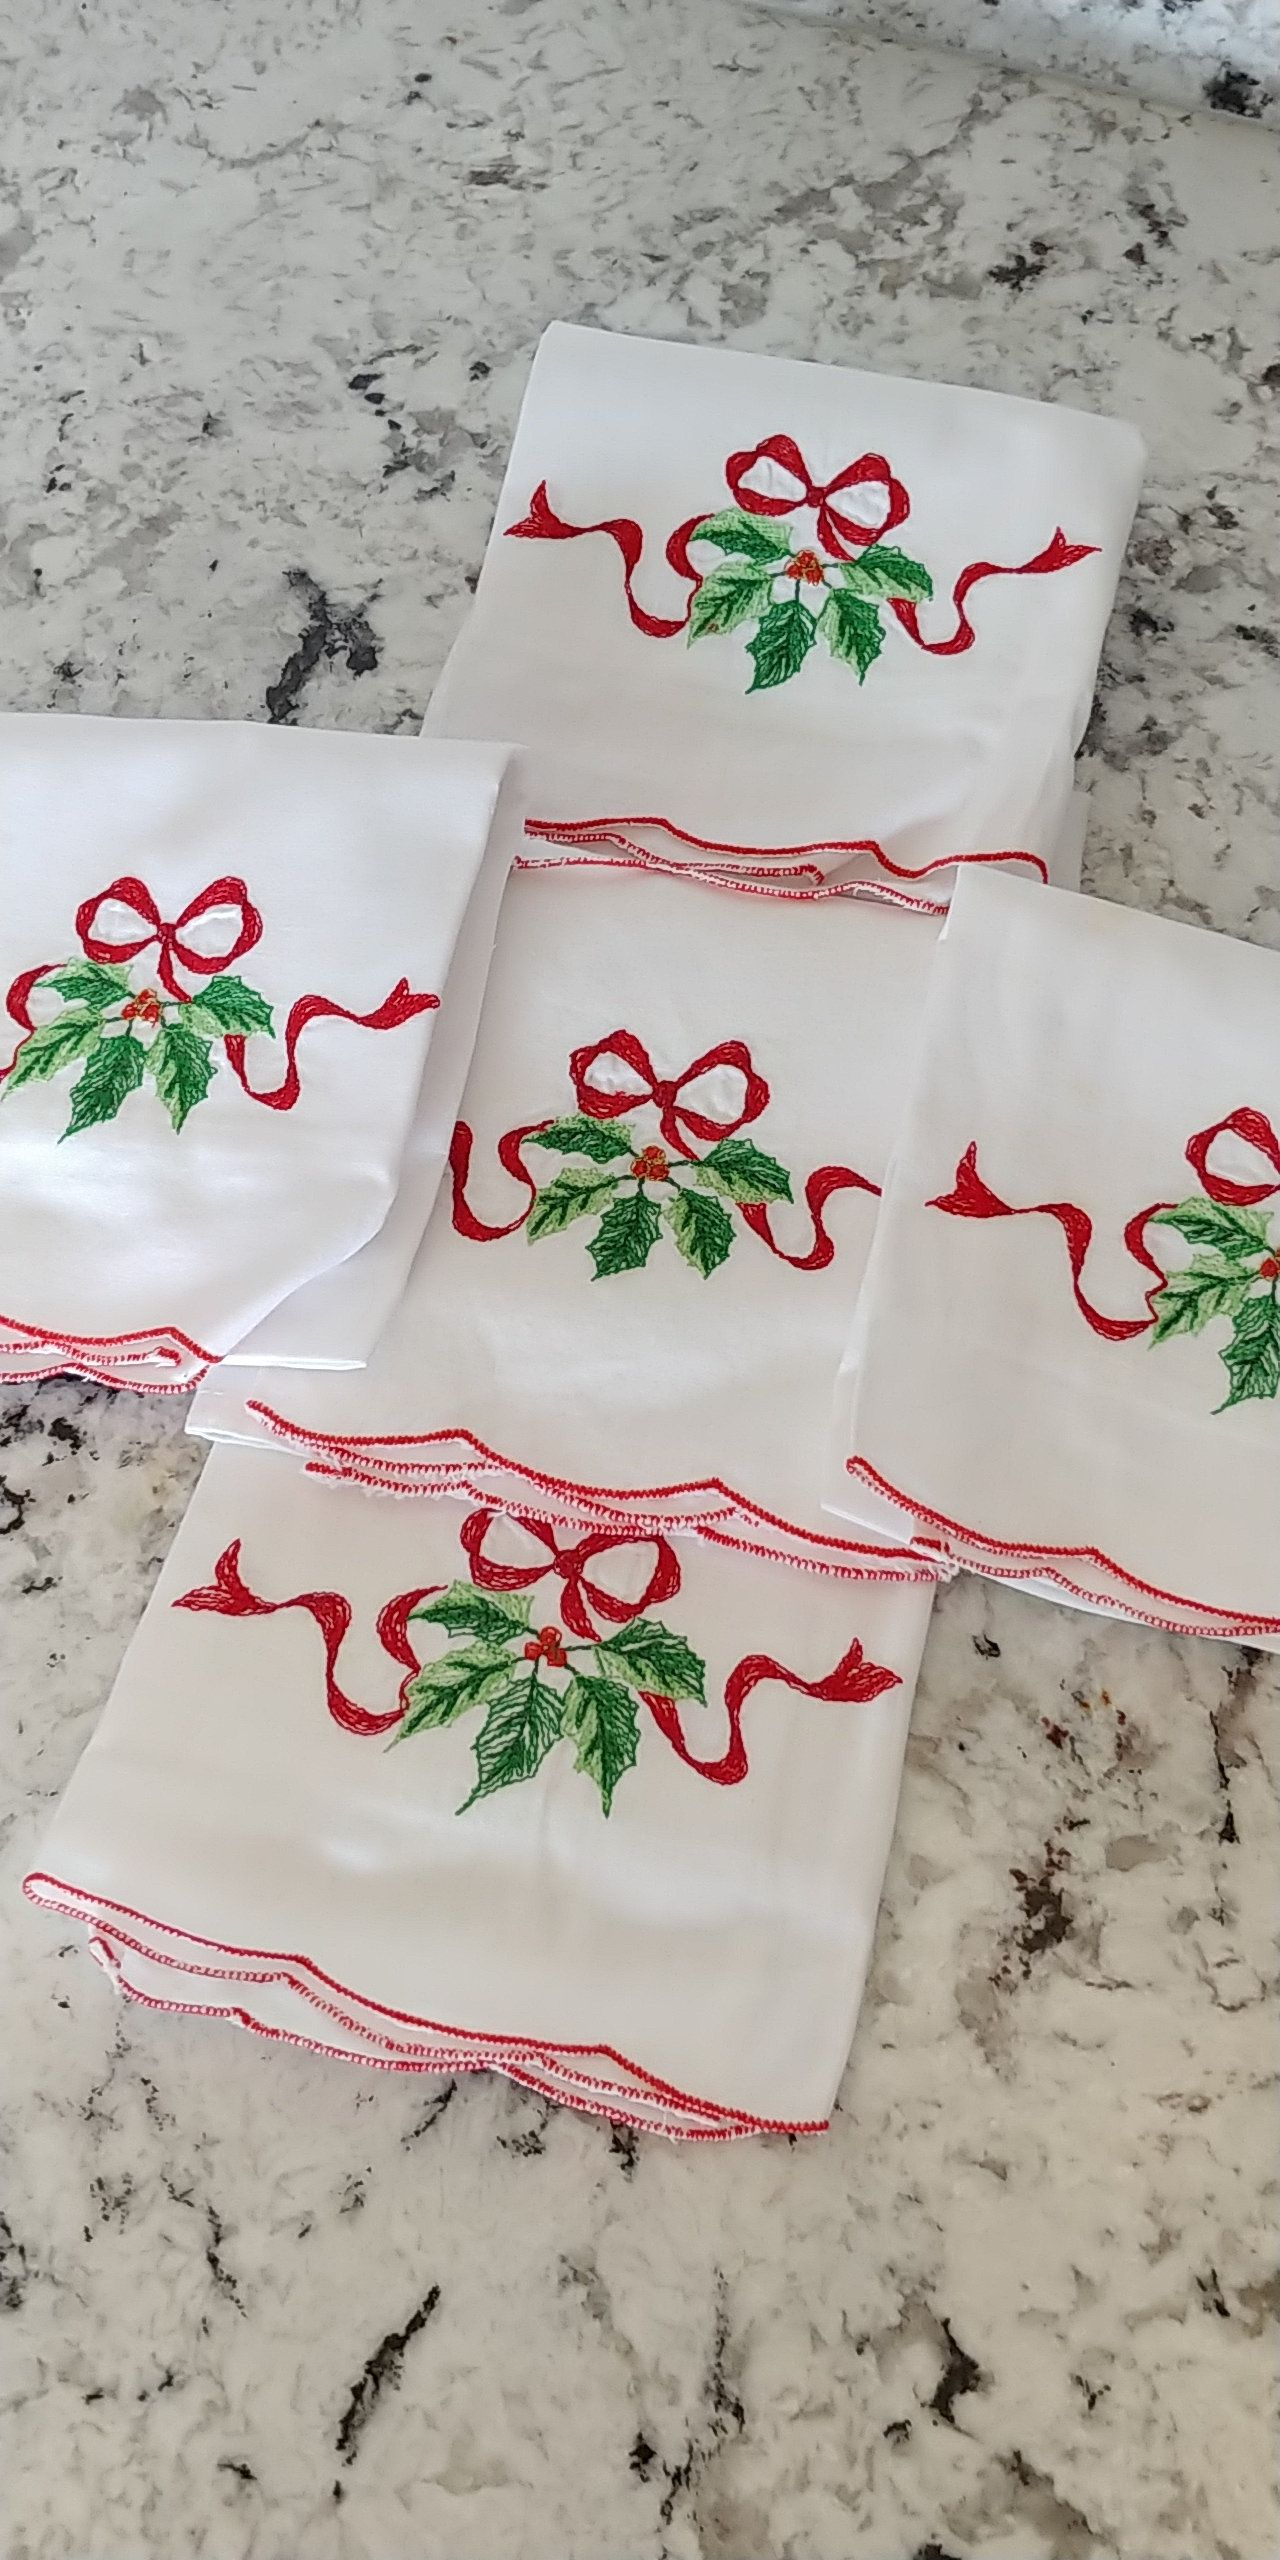 Pretty White Vintage Christmas Cloth Napkins, Decorated with Red Ribbon Bow, Holly & Berries. Perfect for your Holiday Table. 5 Napkin Set #clothnapkins